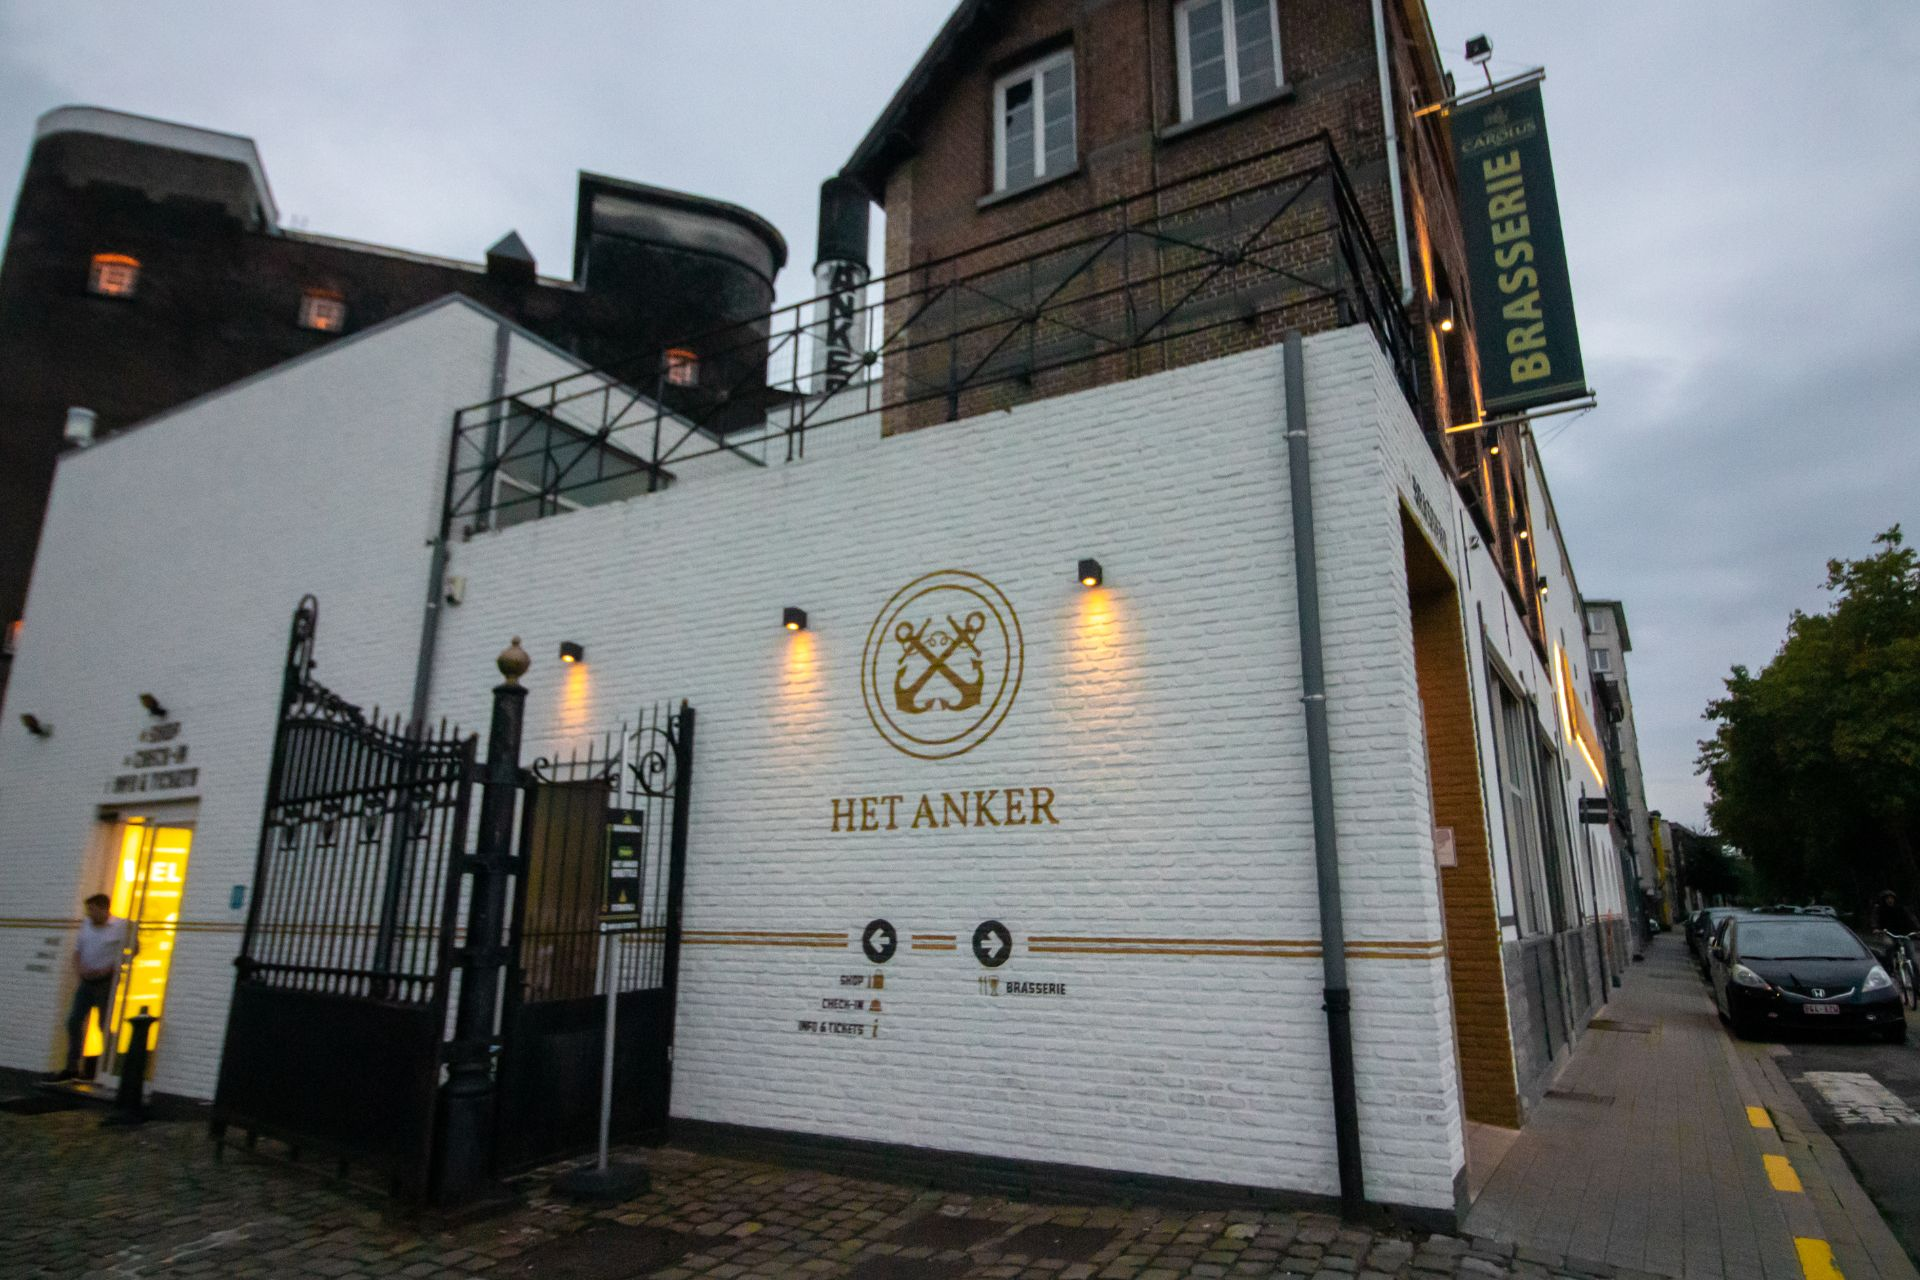 het-anker-brewery-lit-up-at-night